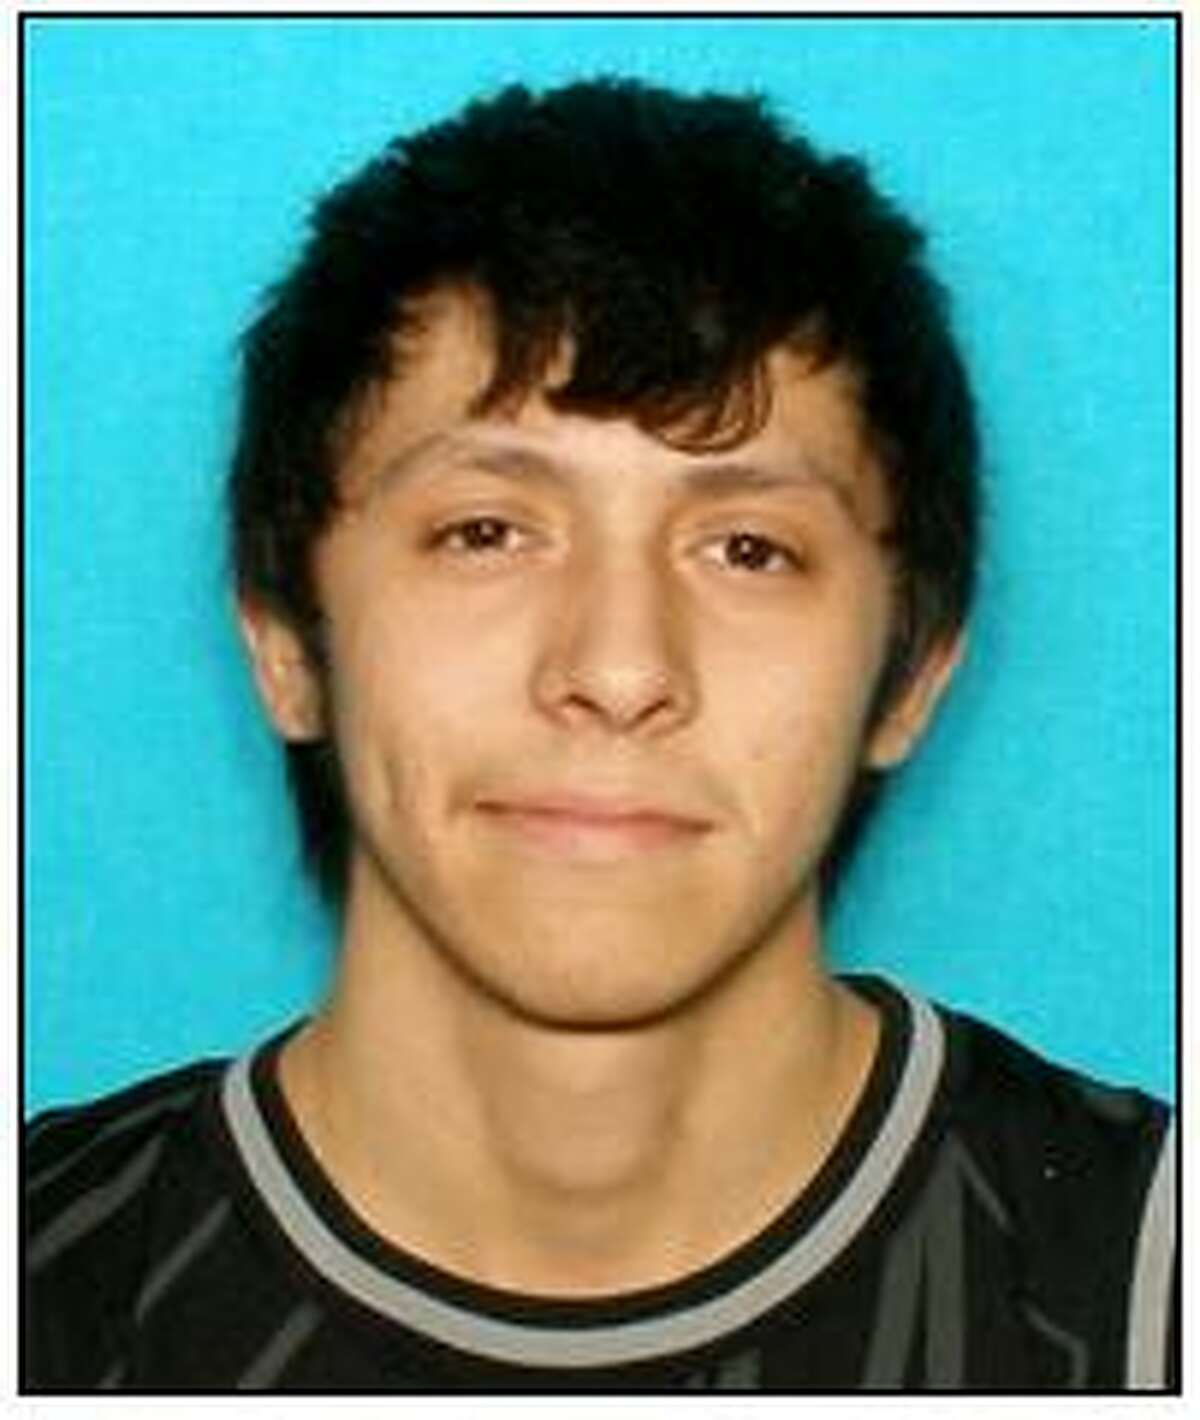 Jose Rodriguez, 25, was reported as actively missing on Feb. 18, 2017, two days after he disappeared from a bloody crime scene on the city's West side.